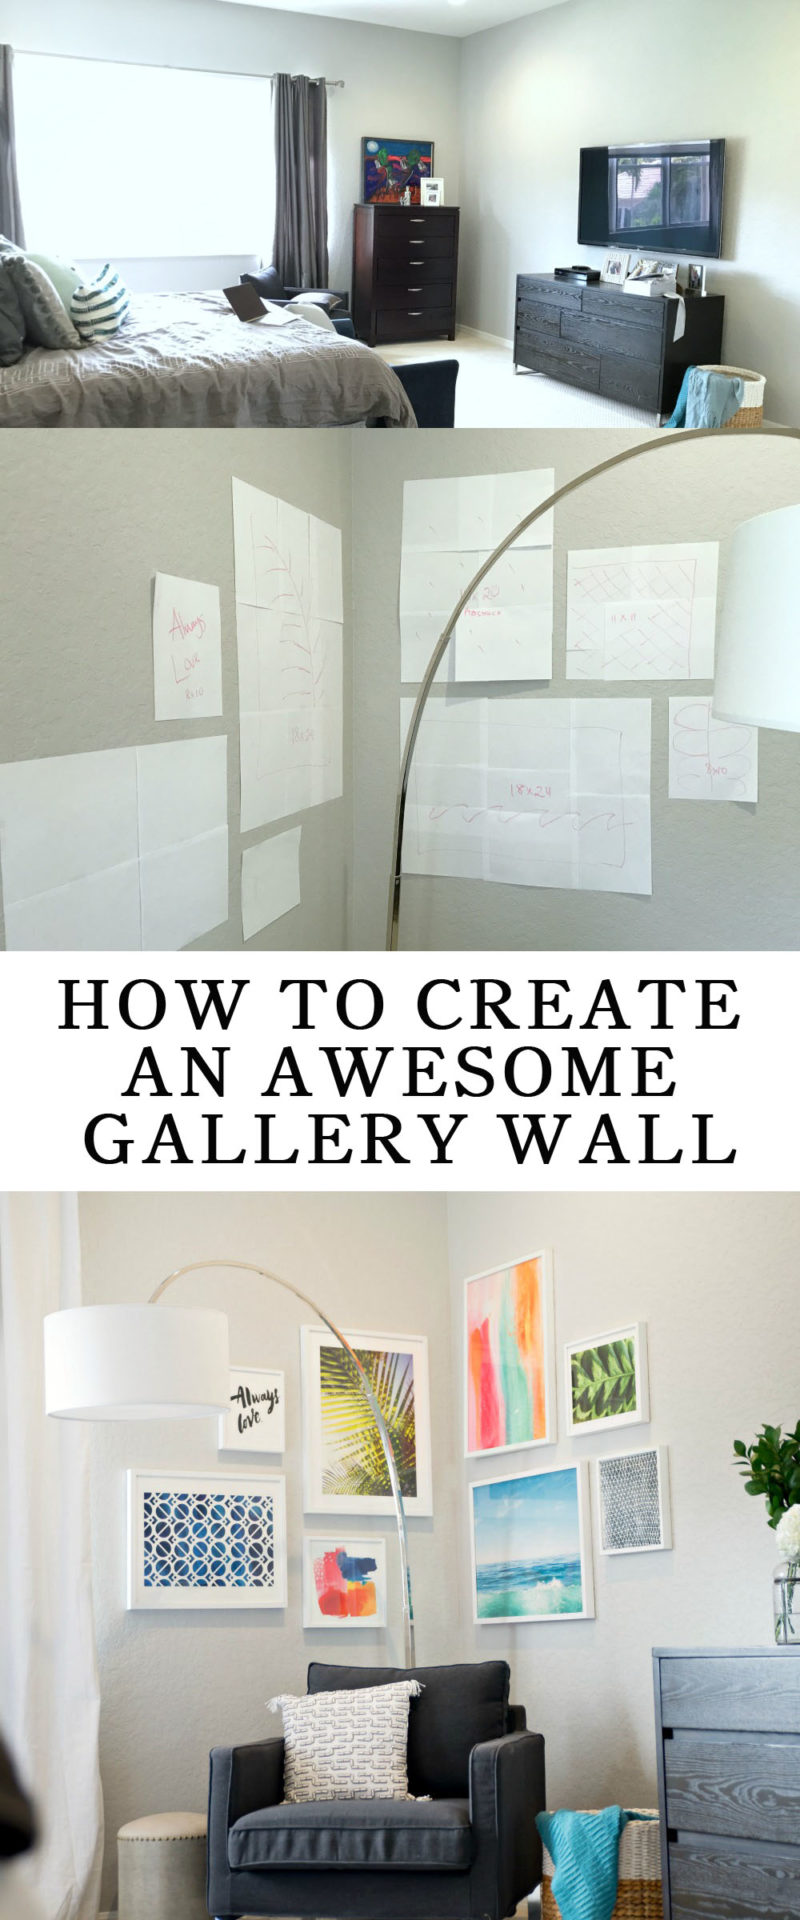 How to create your own awesome gallery wall -- tips from a designer! // the modern savvy